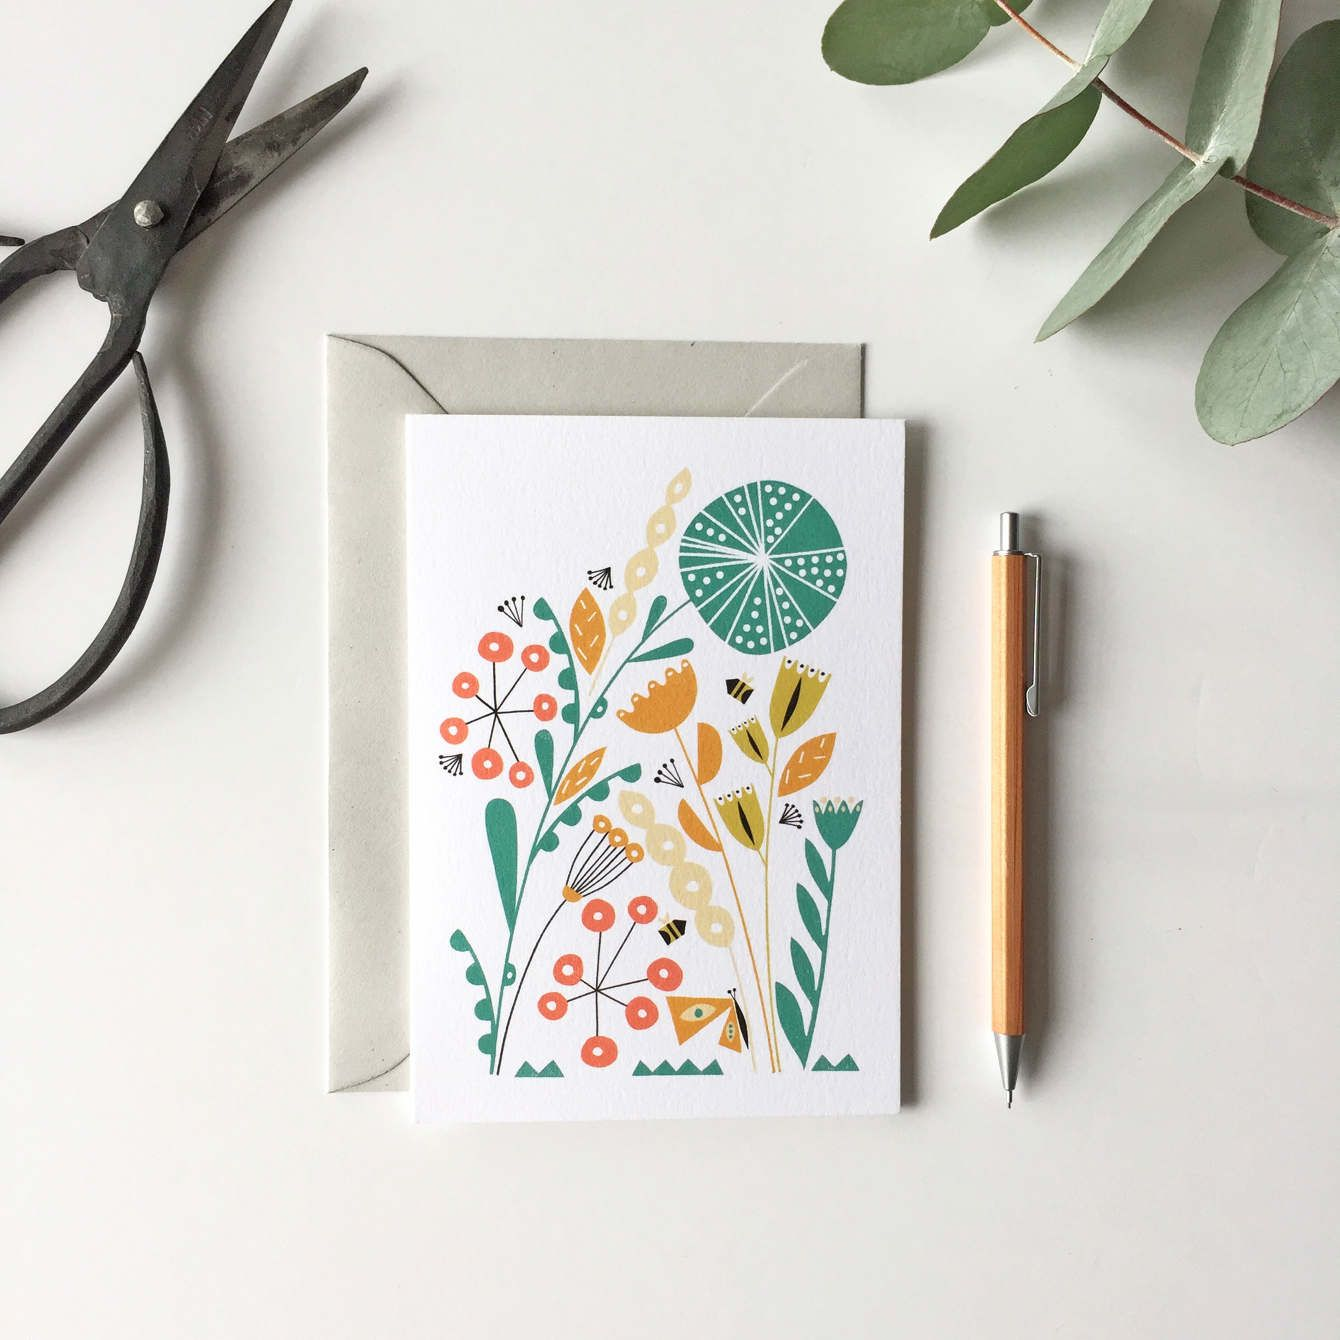 Stationary debbie powell greeting cards pinterest stationary